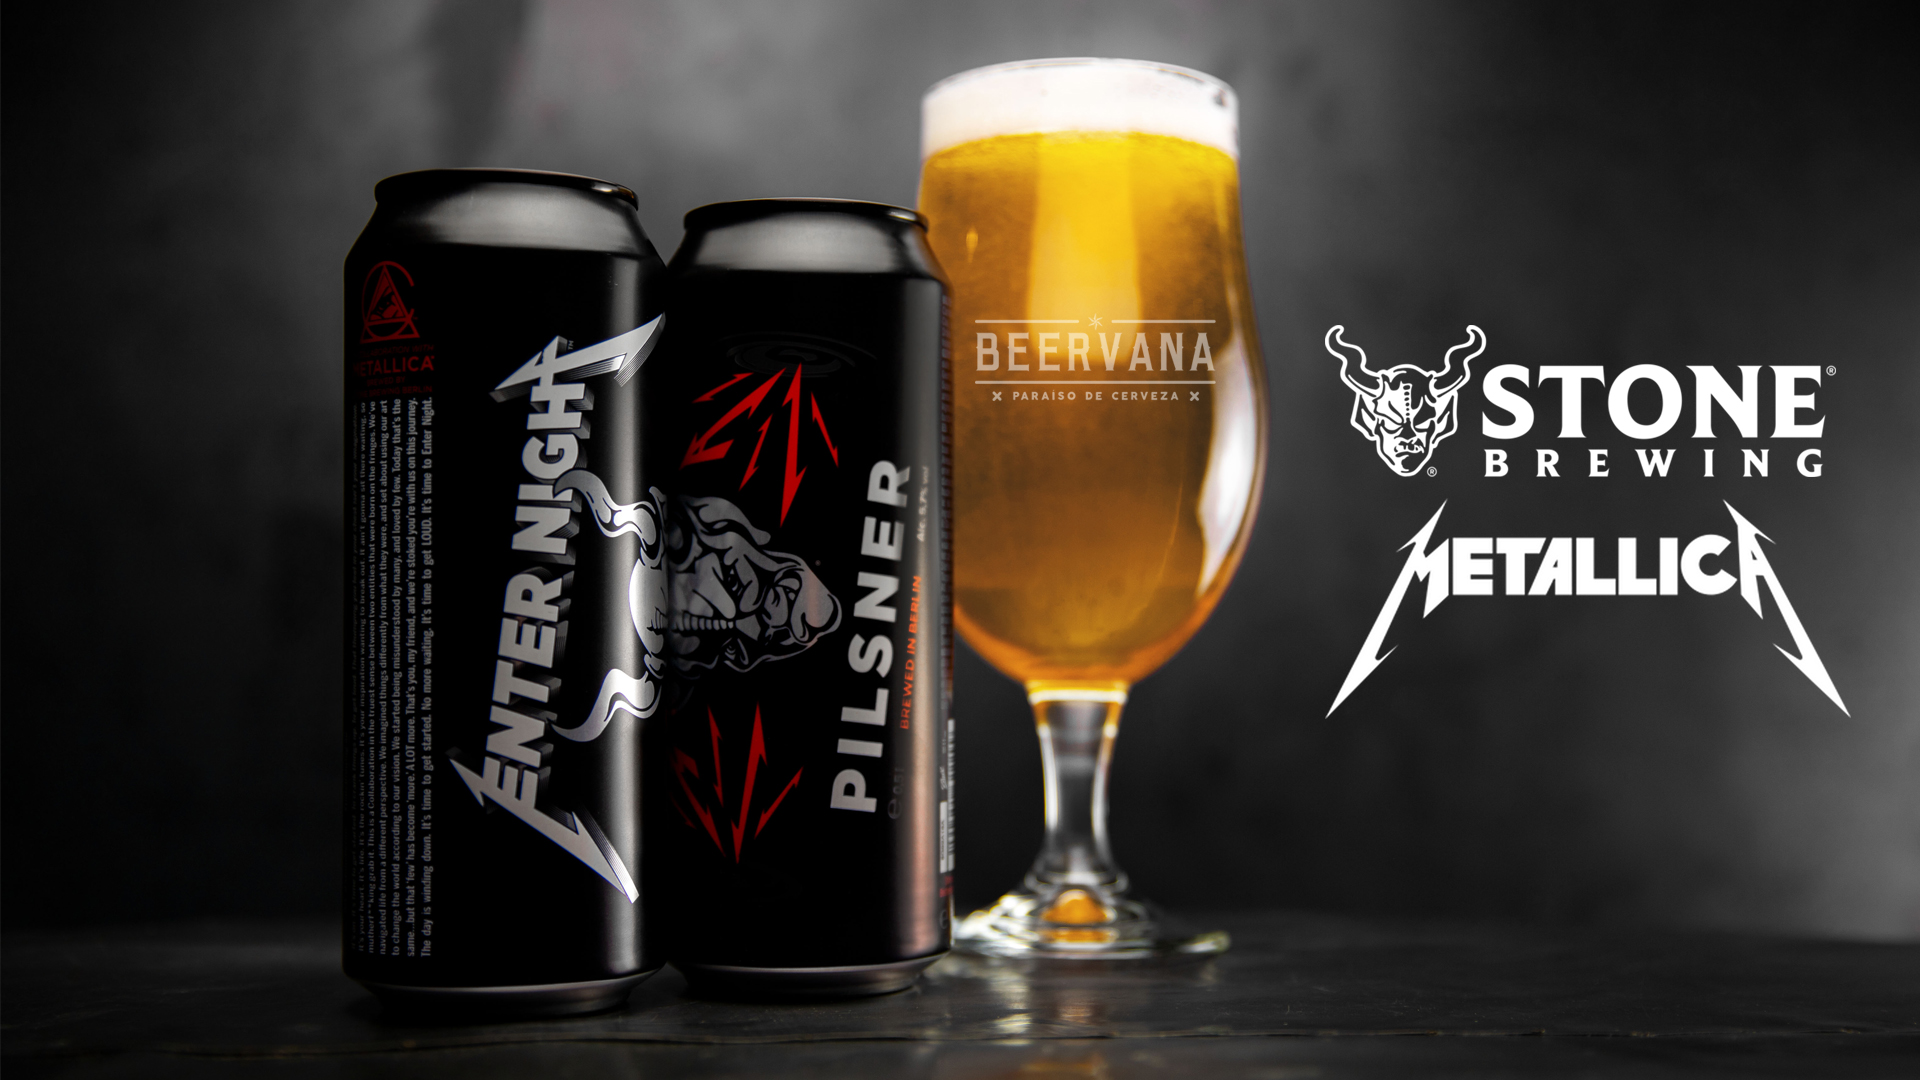 Ya llego Enter Night de Metallica y Stone Brewing